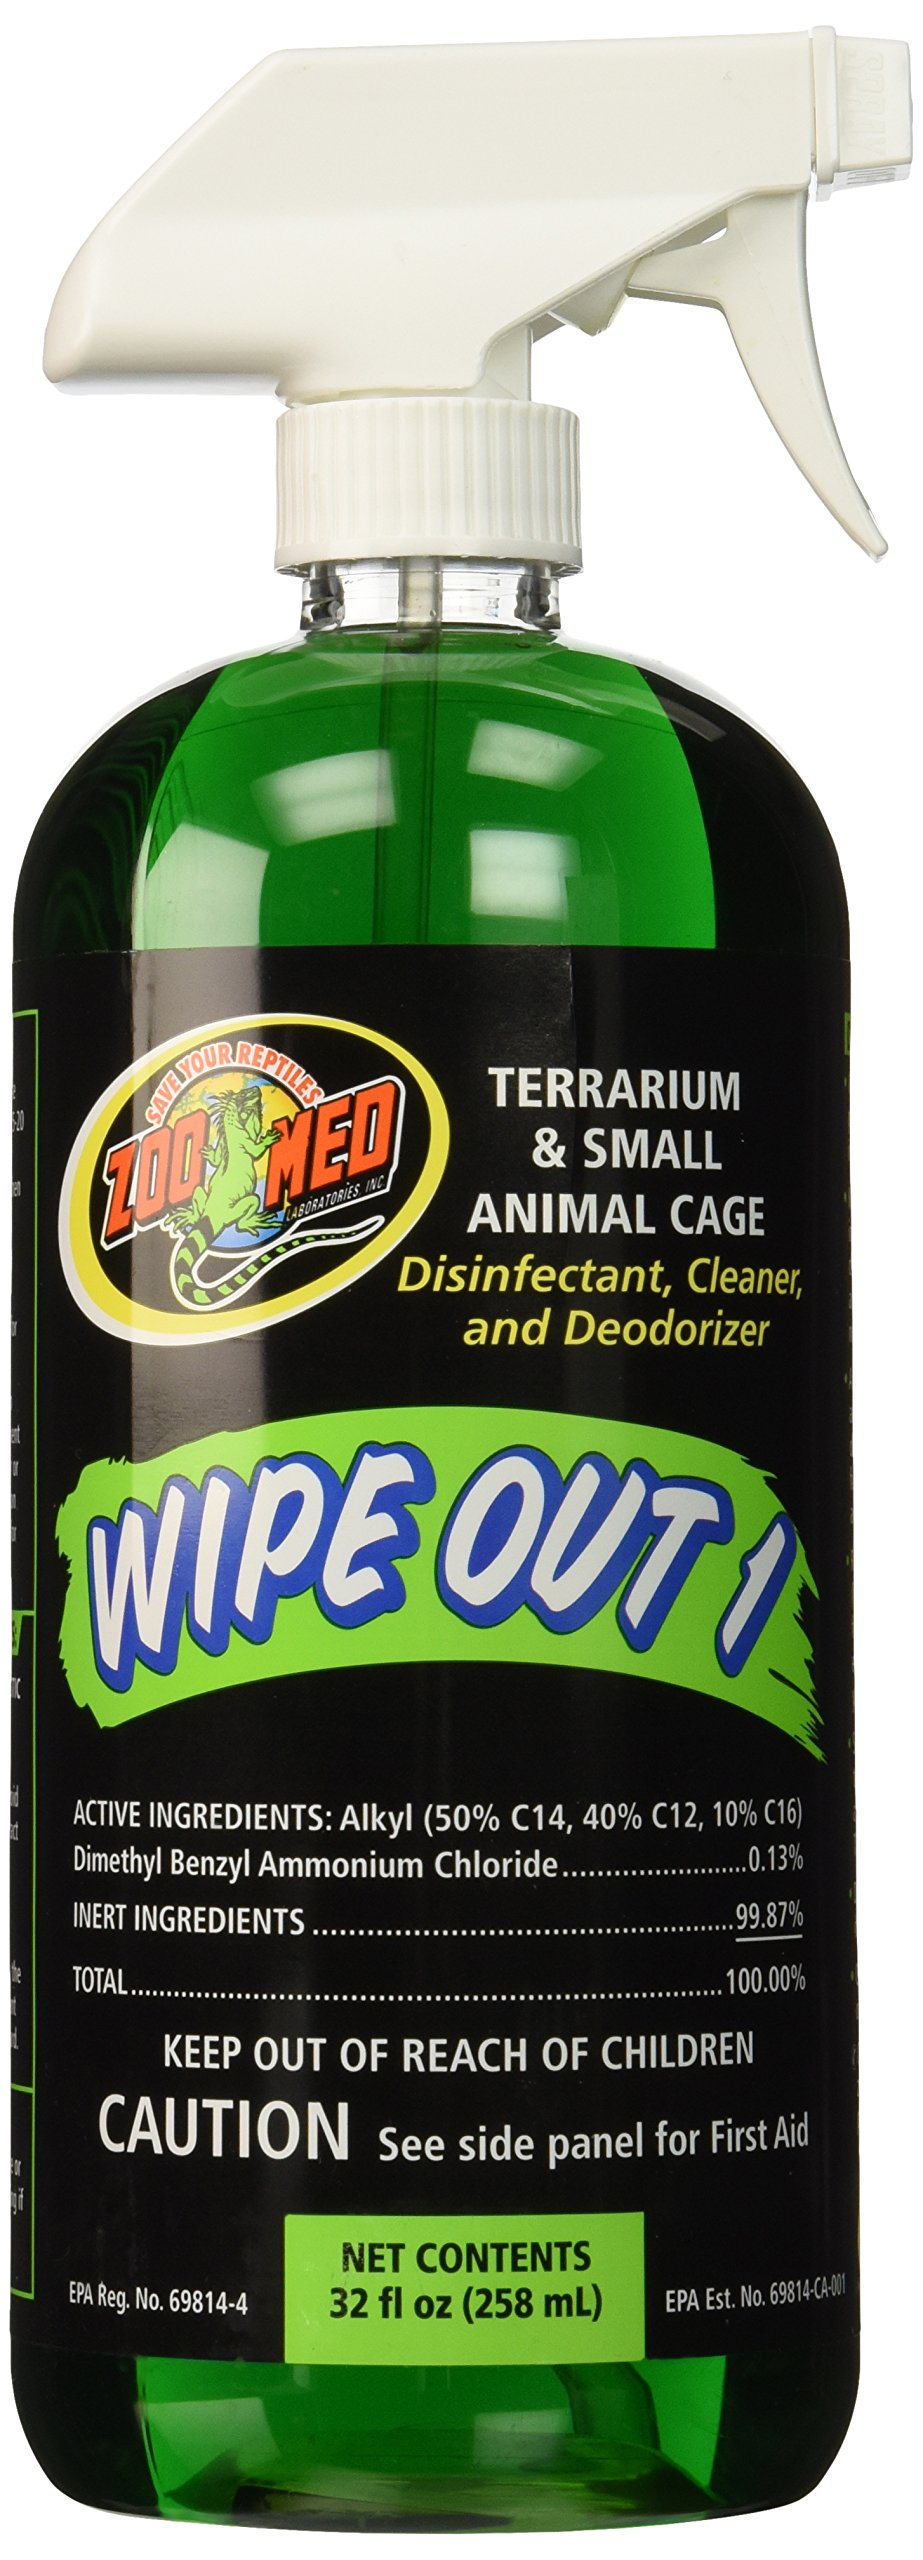 Zoo Med Wipe Out 1 Disinfectant, 32 oz by Zoo Med